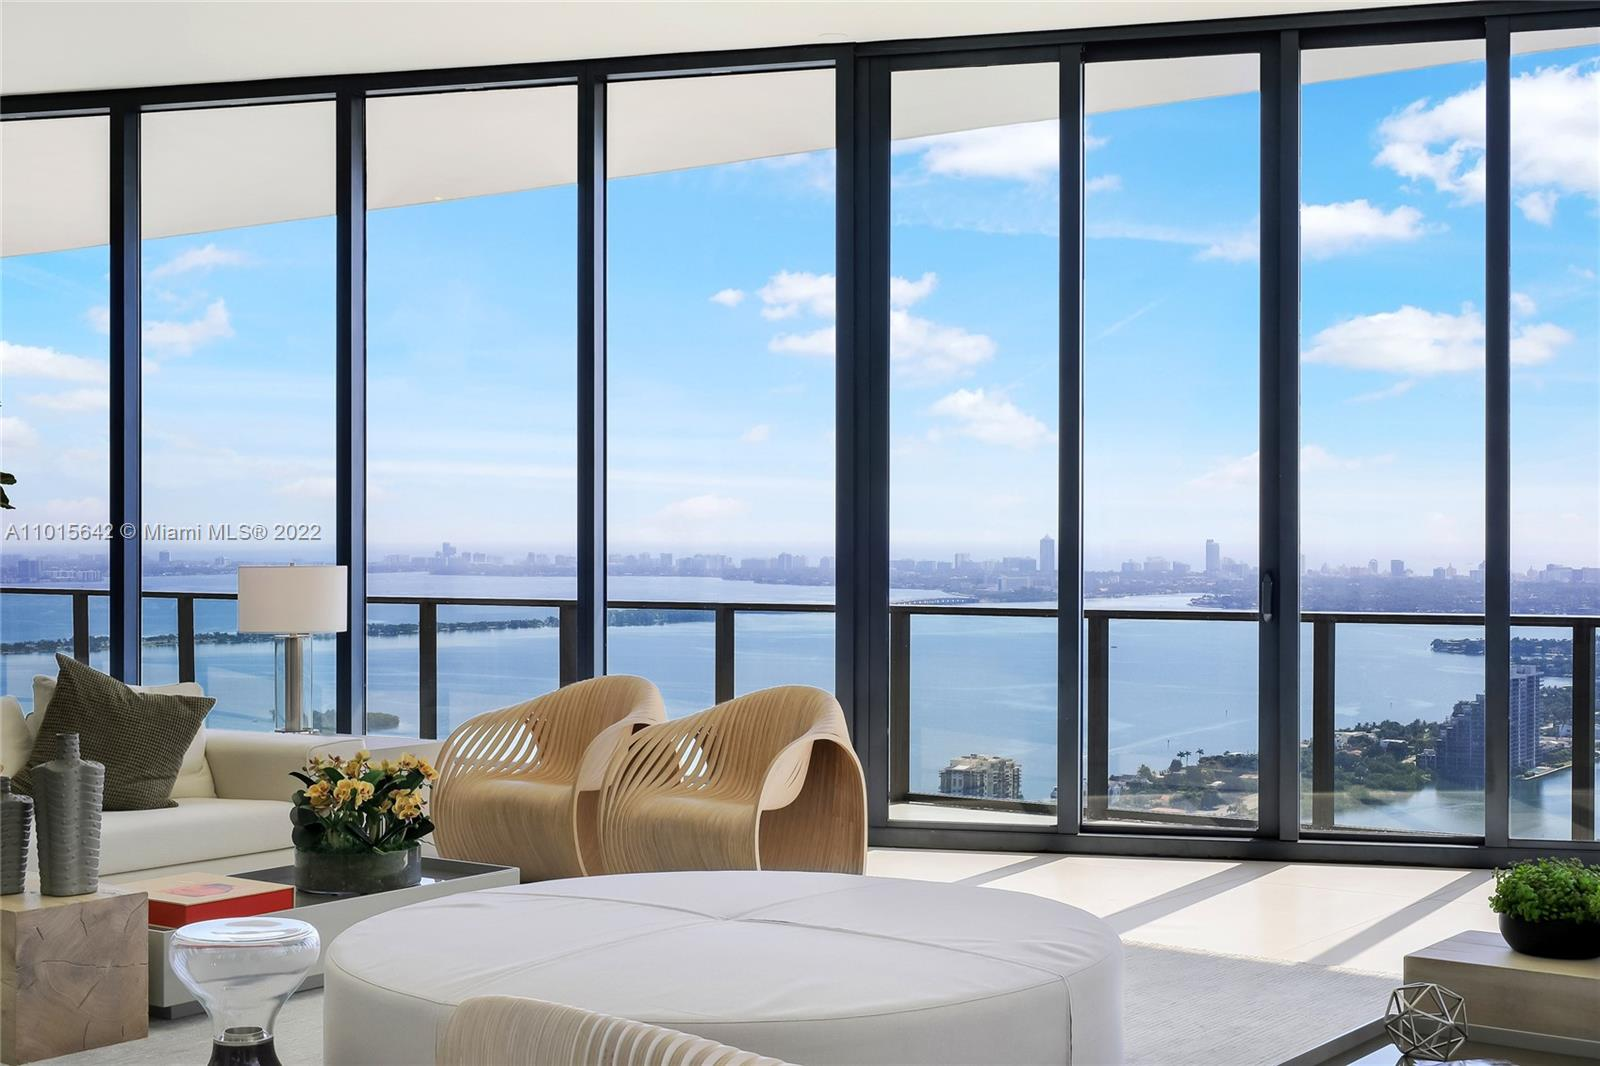 When only the best will do. The only turn key ready, full floor furnished Penthouse in a renowned Zaha designed building with a private helipad on the market in S Florida. Every aspect, every corner of this Penthouse is one of a kind. Expansive views in every direction are ever-present through glass walls that reach up to 12' ceilings. Master wing is an absolute sanctuary. Four oversized, luxurious suites, with spa baths & terrace access. Perfect for entertaining, this residence offers an open-plan flow, from a great room into a formal dining room and out onto a 1,200-SqFt terrace. White glove service, six star amenities and views you have only dreamt of are at your fingertips.  This Penthouse is like no other ... positively mesmerizing.